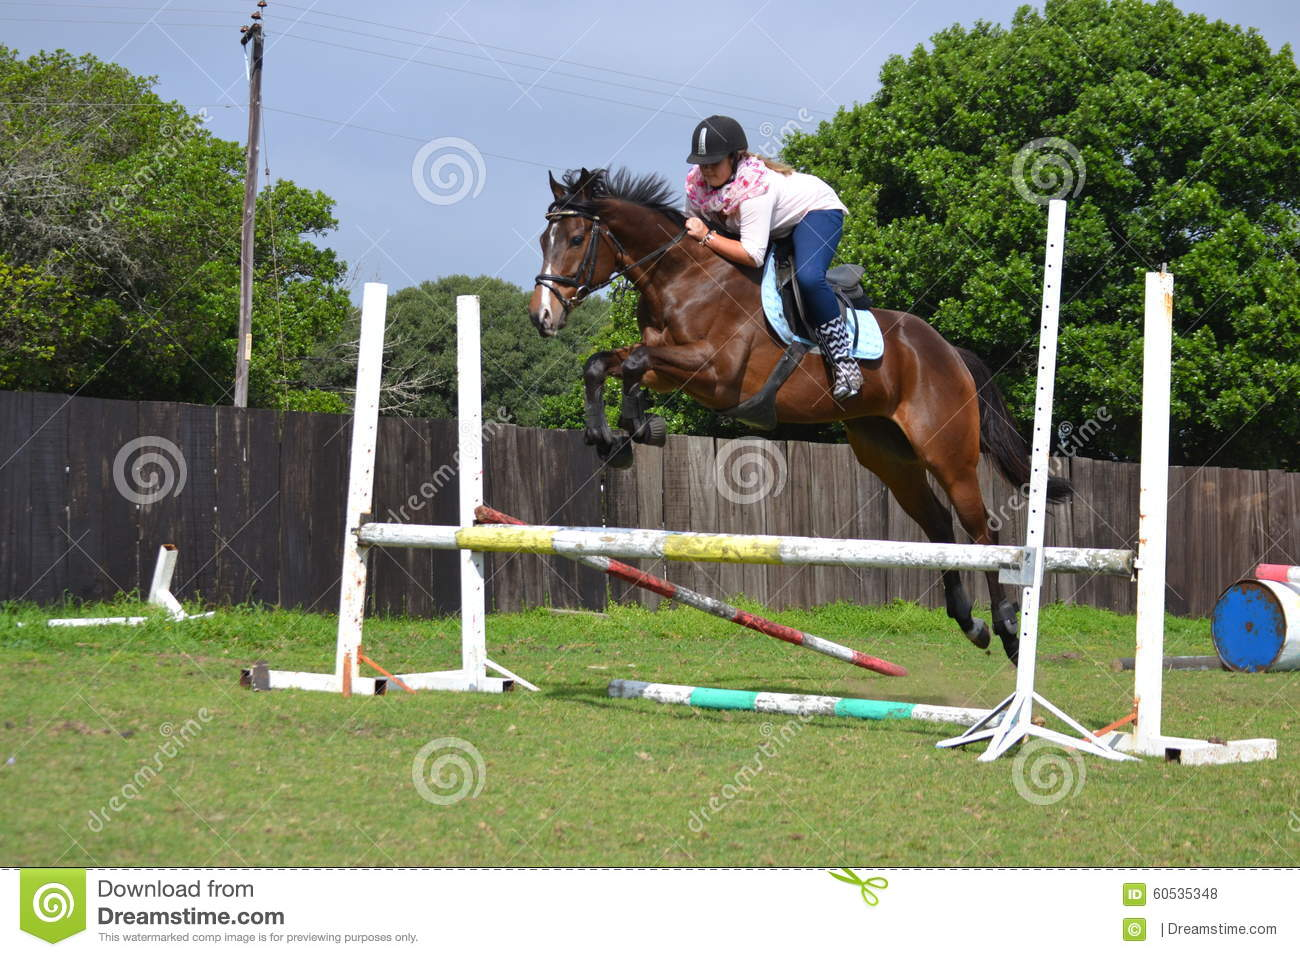 512 Bay Thoroughbred Jumping Photos Free Royalty Free Stock Photos From Dreamstime